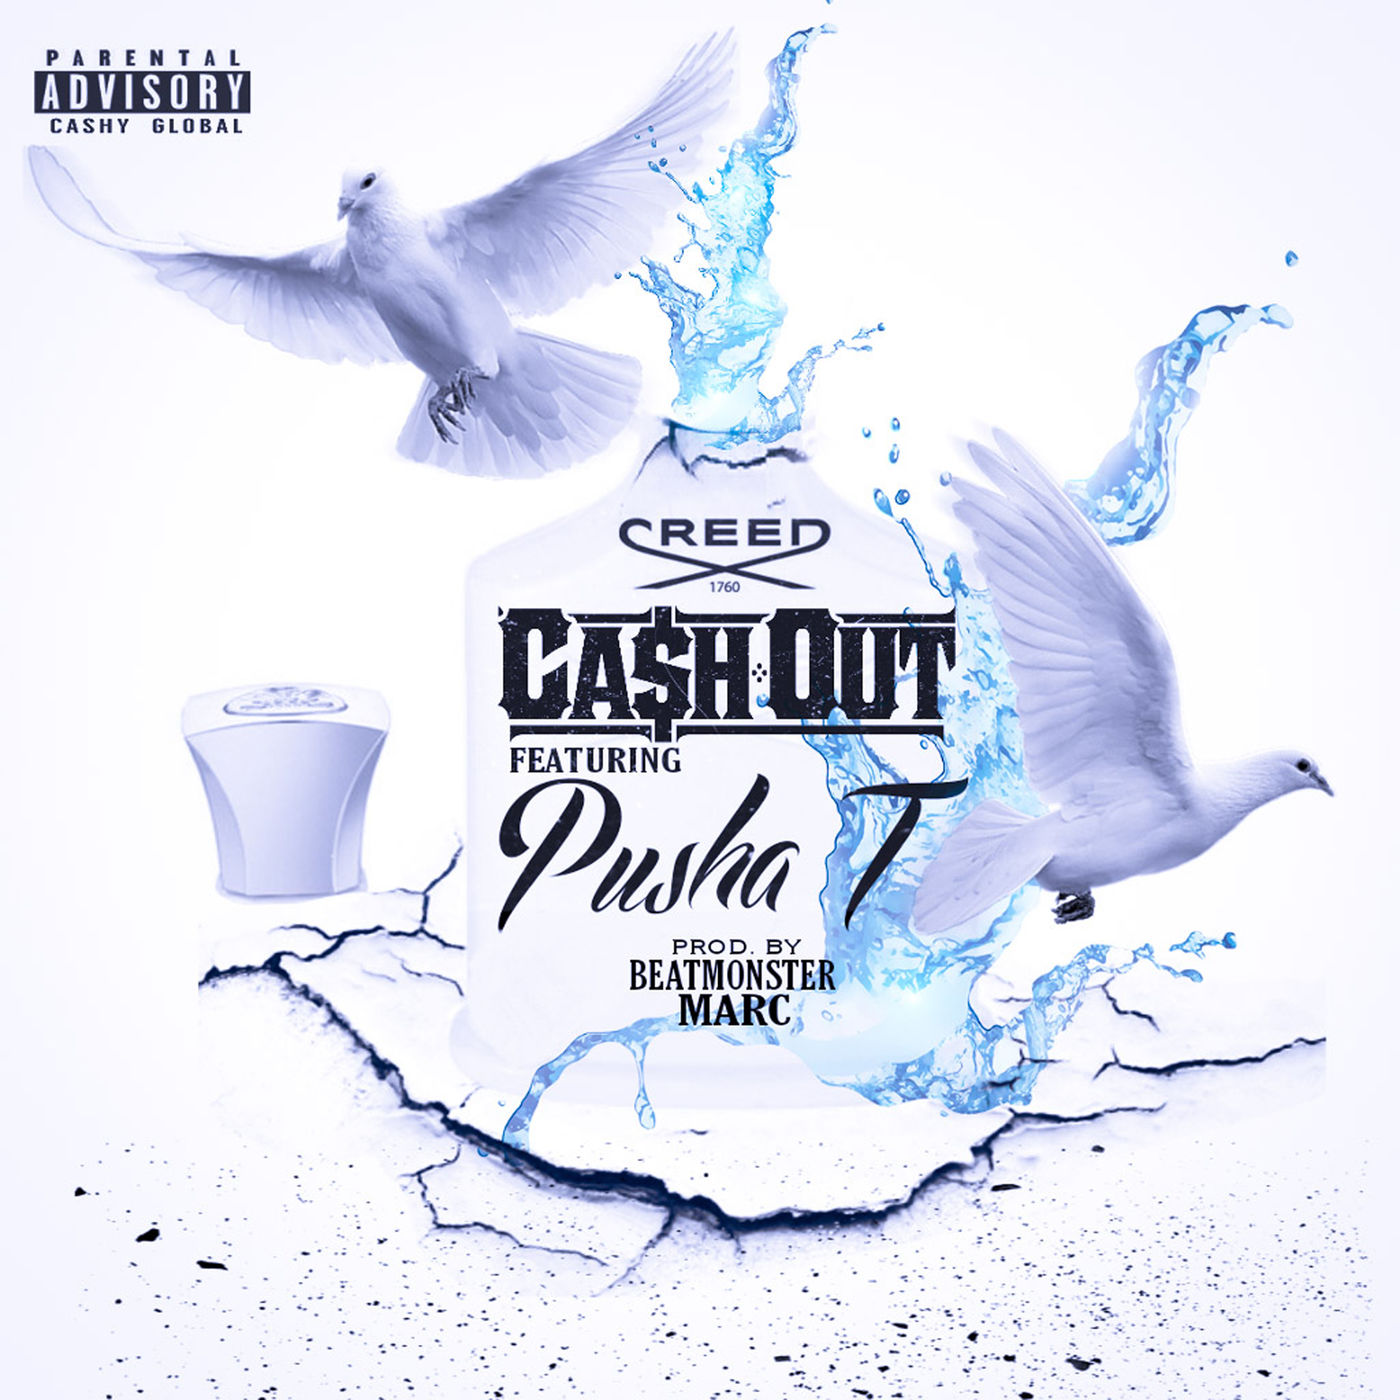 Ca$h Out - Creed (feat. Pusha T) - Single Cover